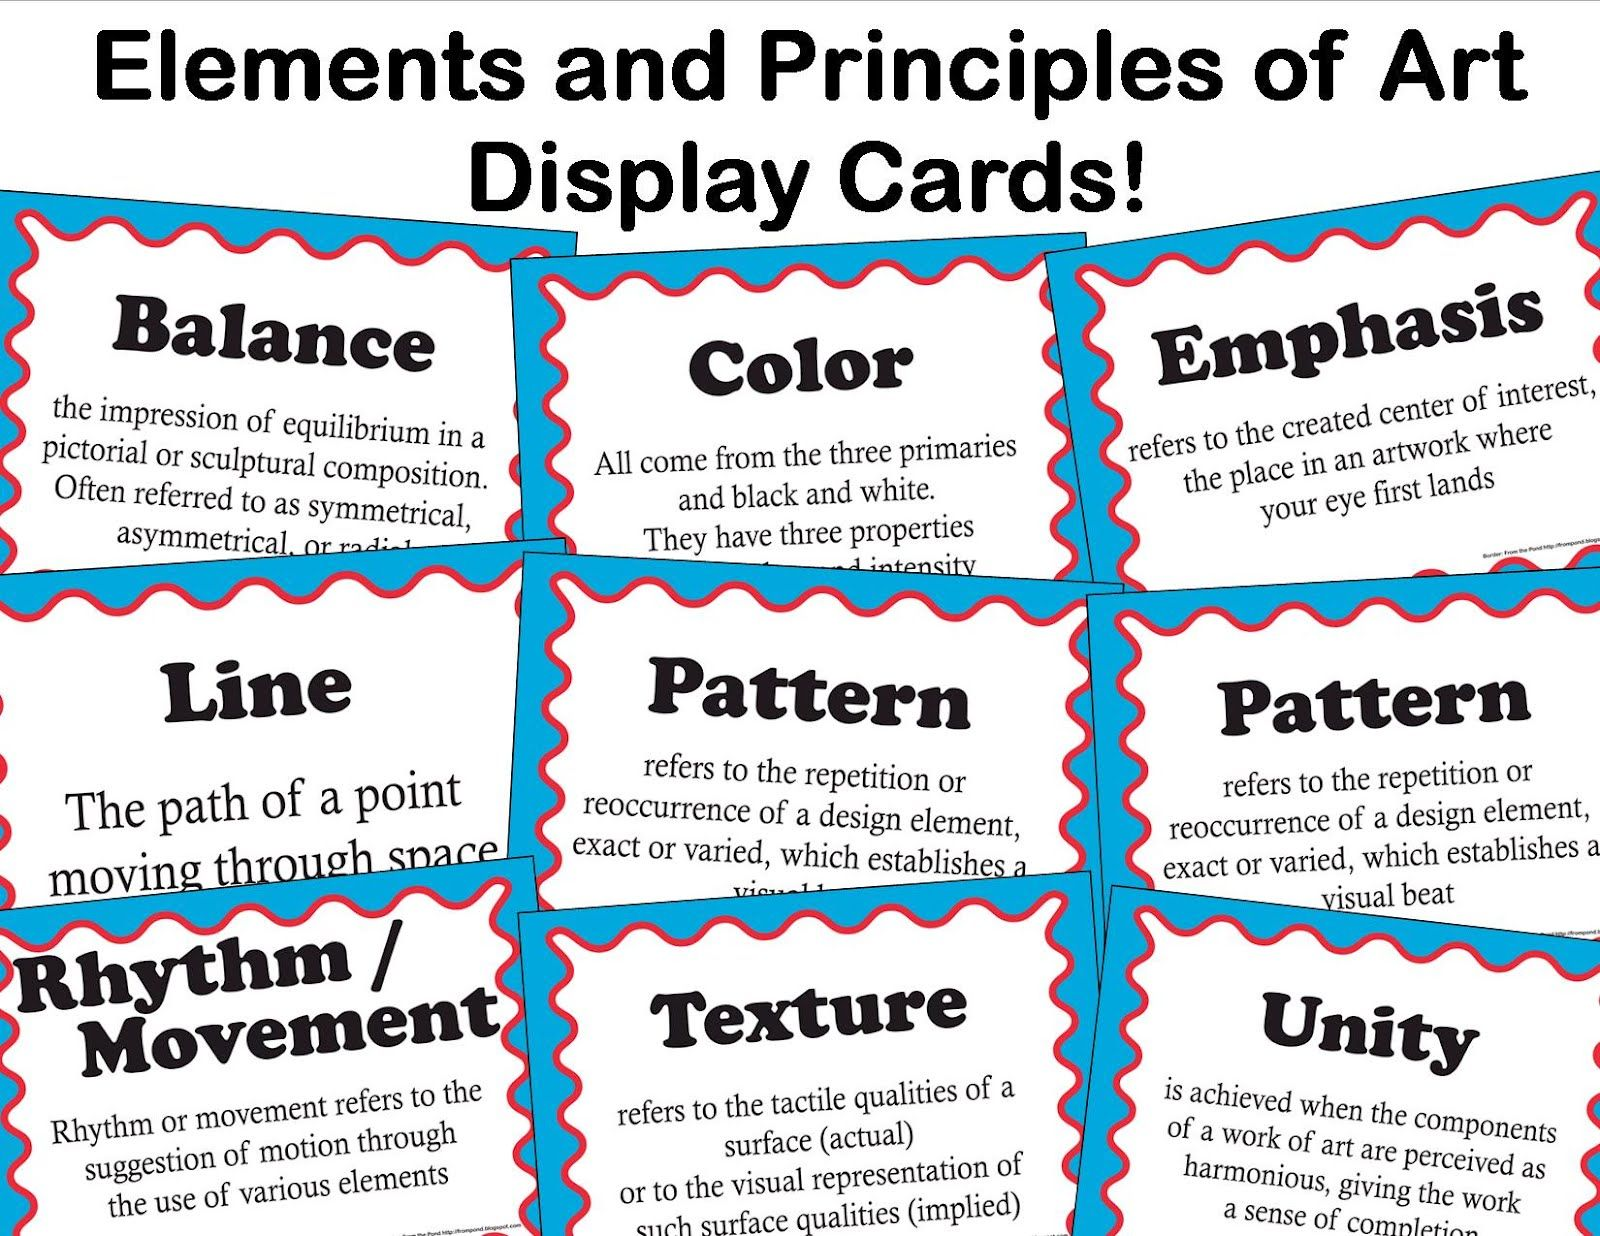 Visual Elements And Principles : Elements and principles of art display cards from artful